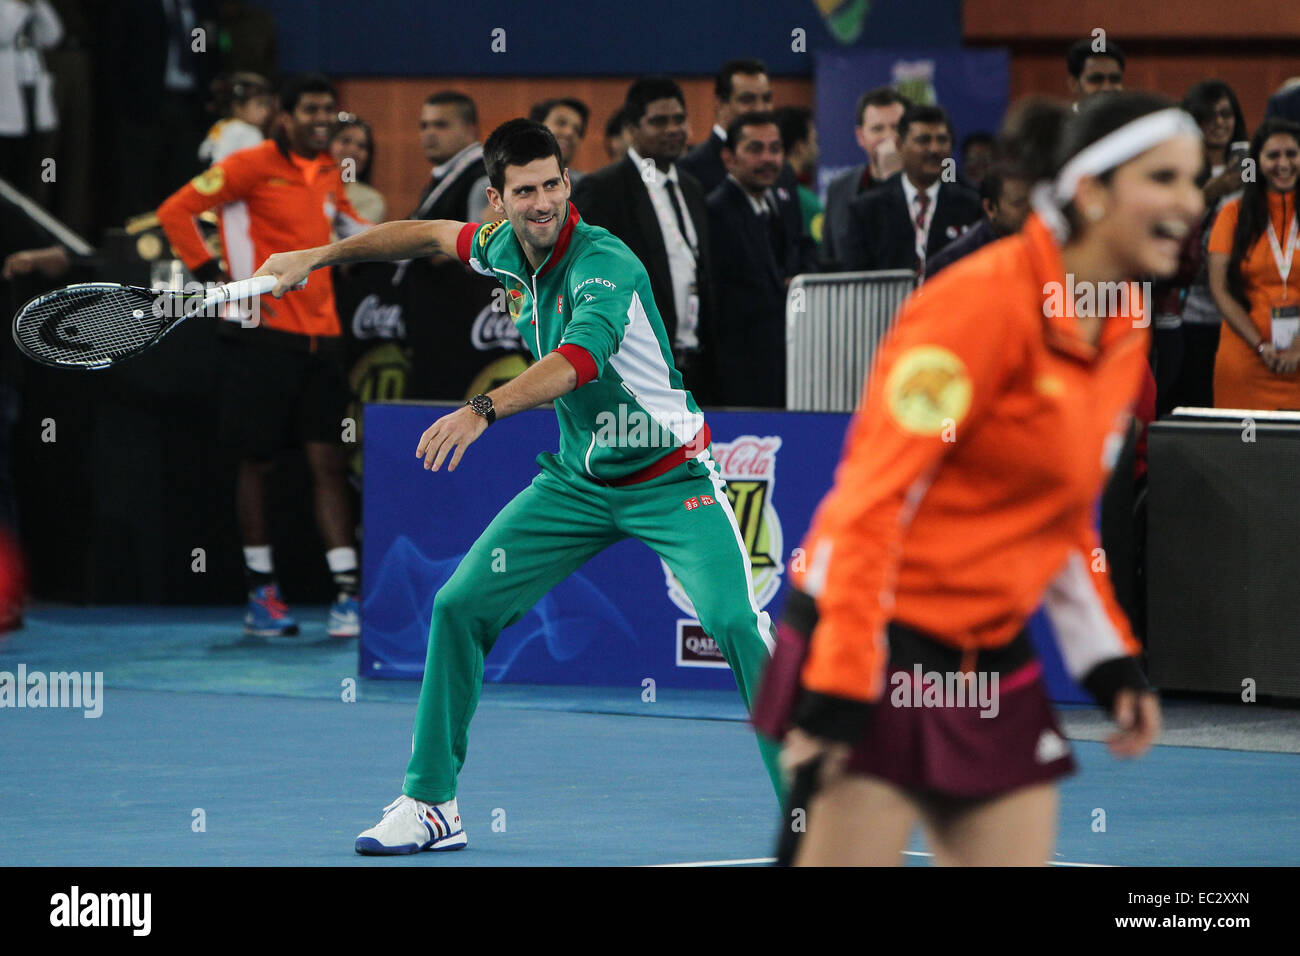 New Delhi, India. 8th Dec, 2014. Serbian tennis player Novak Djokovic (L) prepares to return a ball from Bollywood - Stock Image